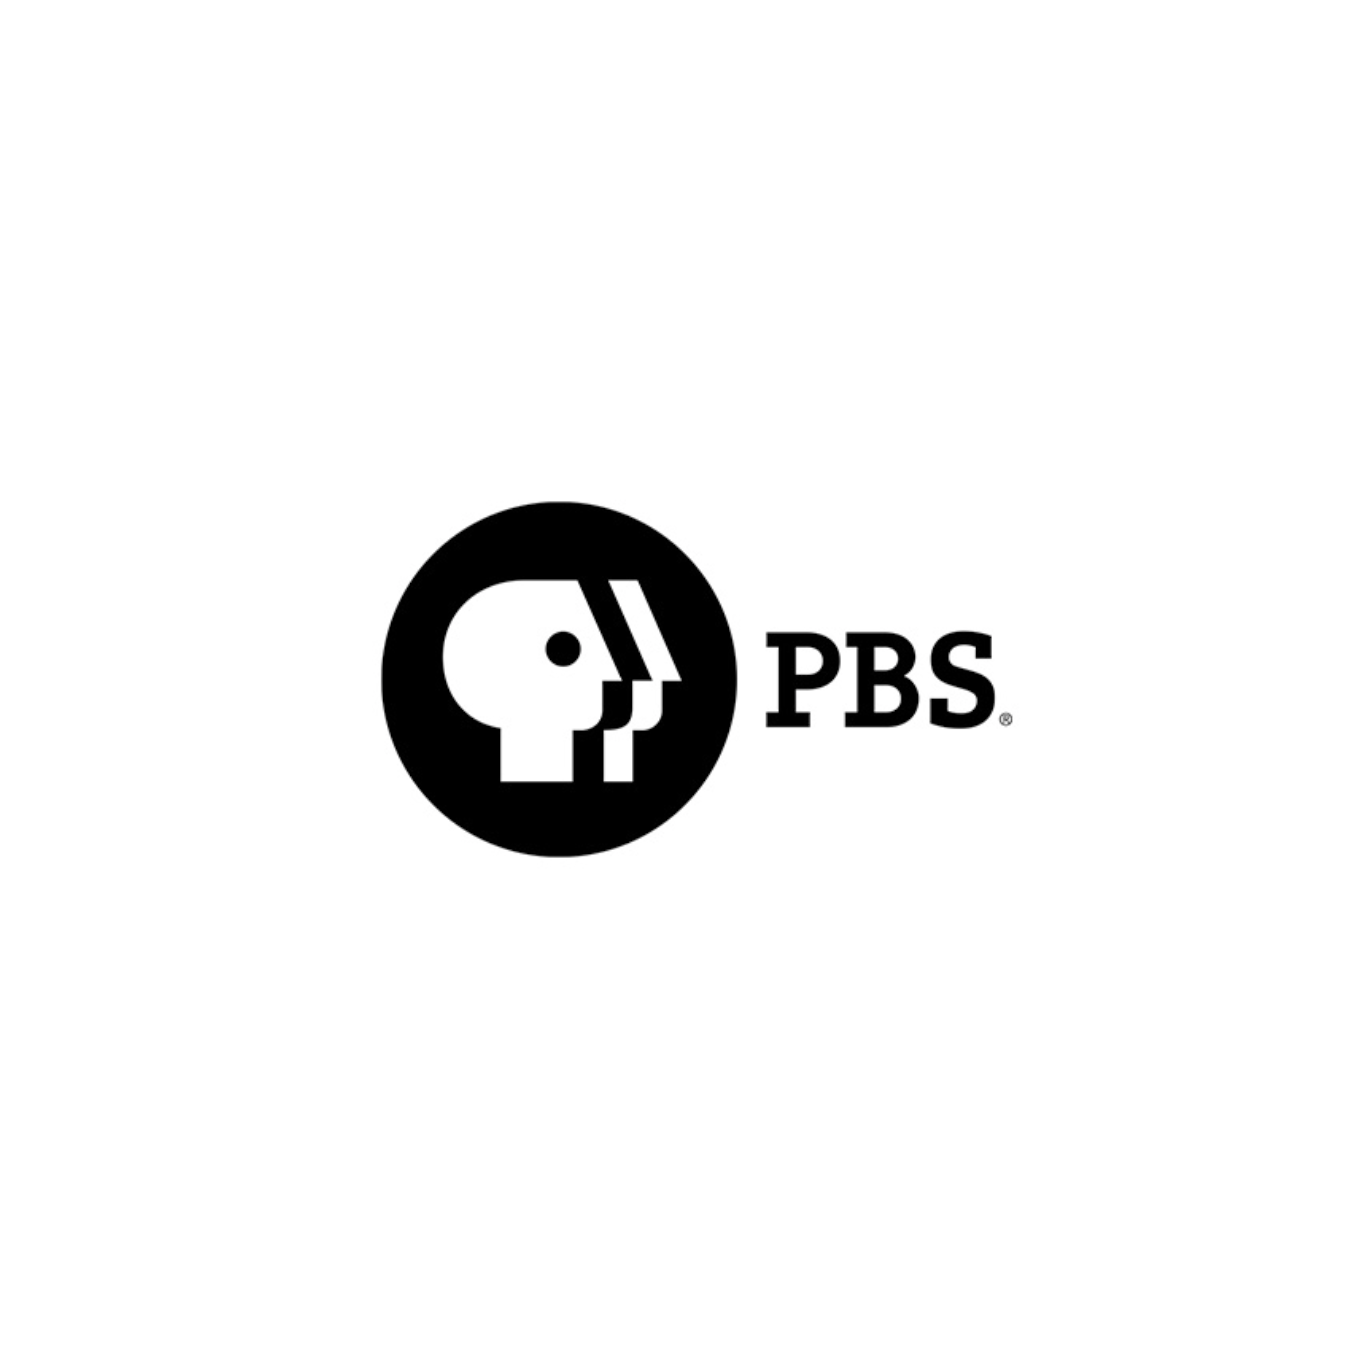 pbs .png